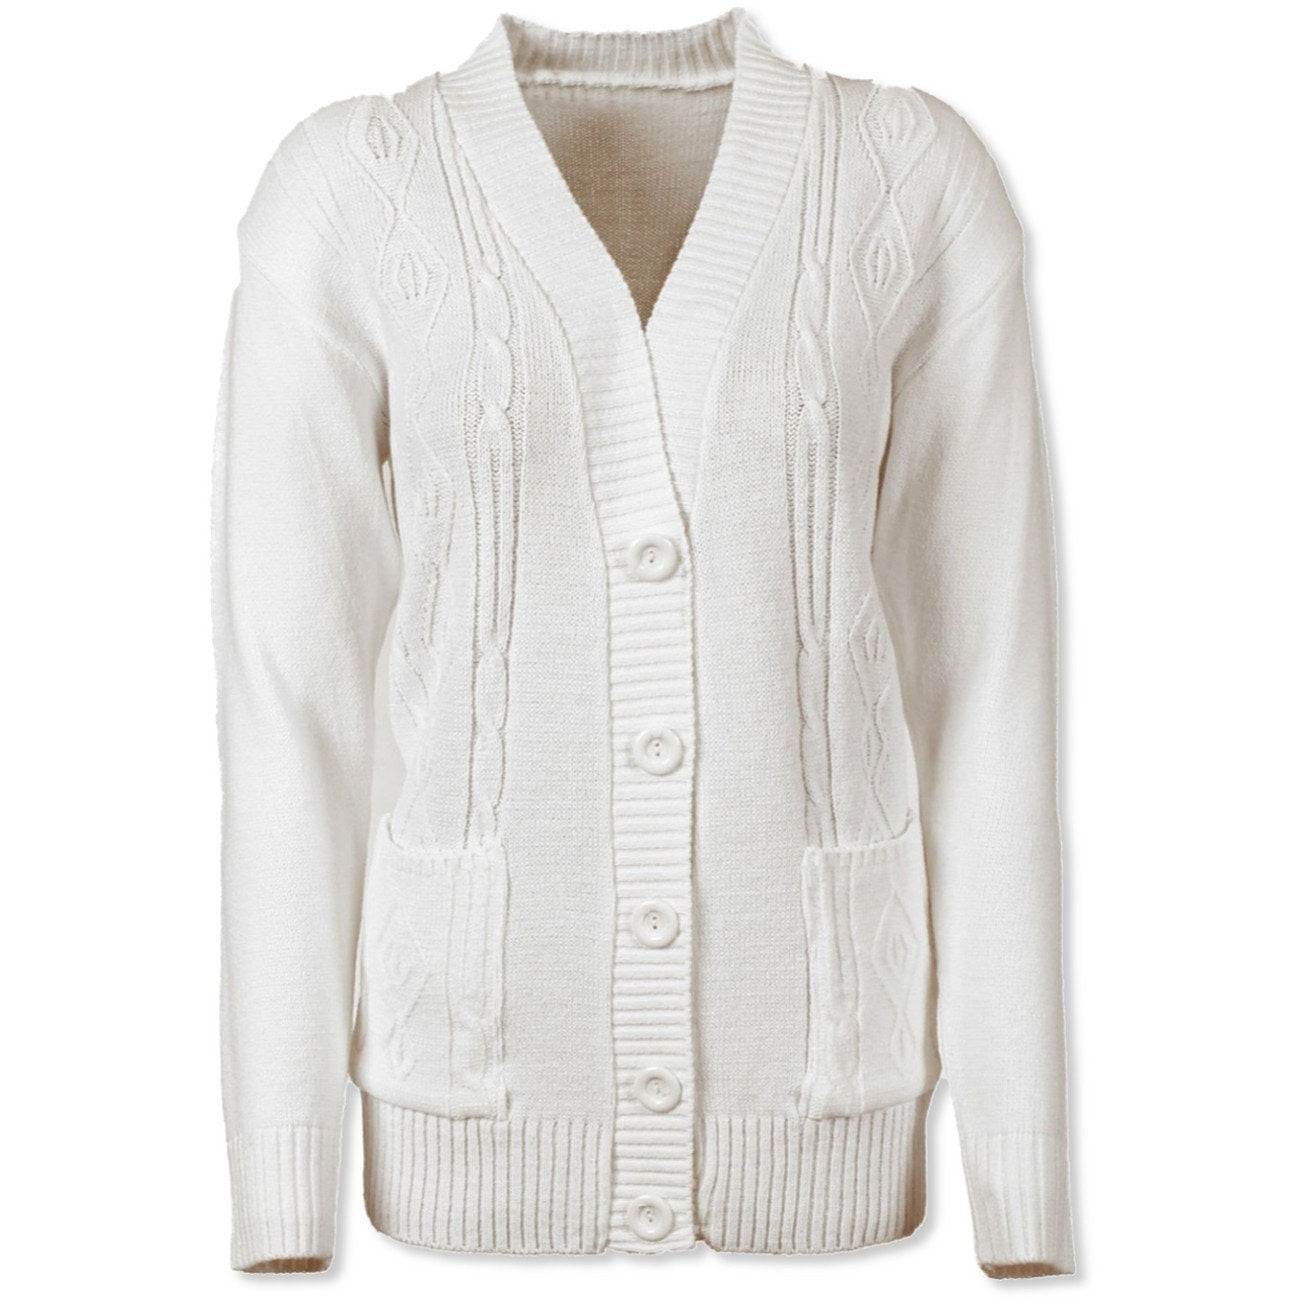 White Cable Knit Cardigan - Kirkwood of Scotland